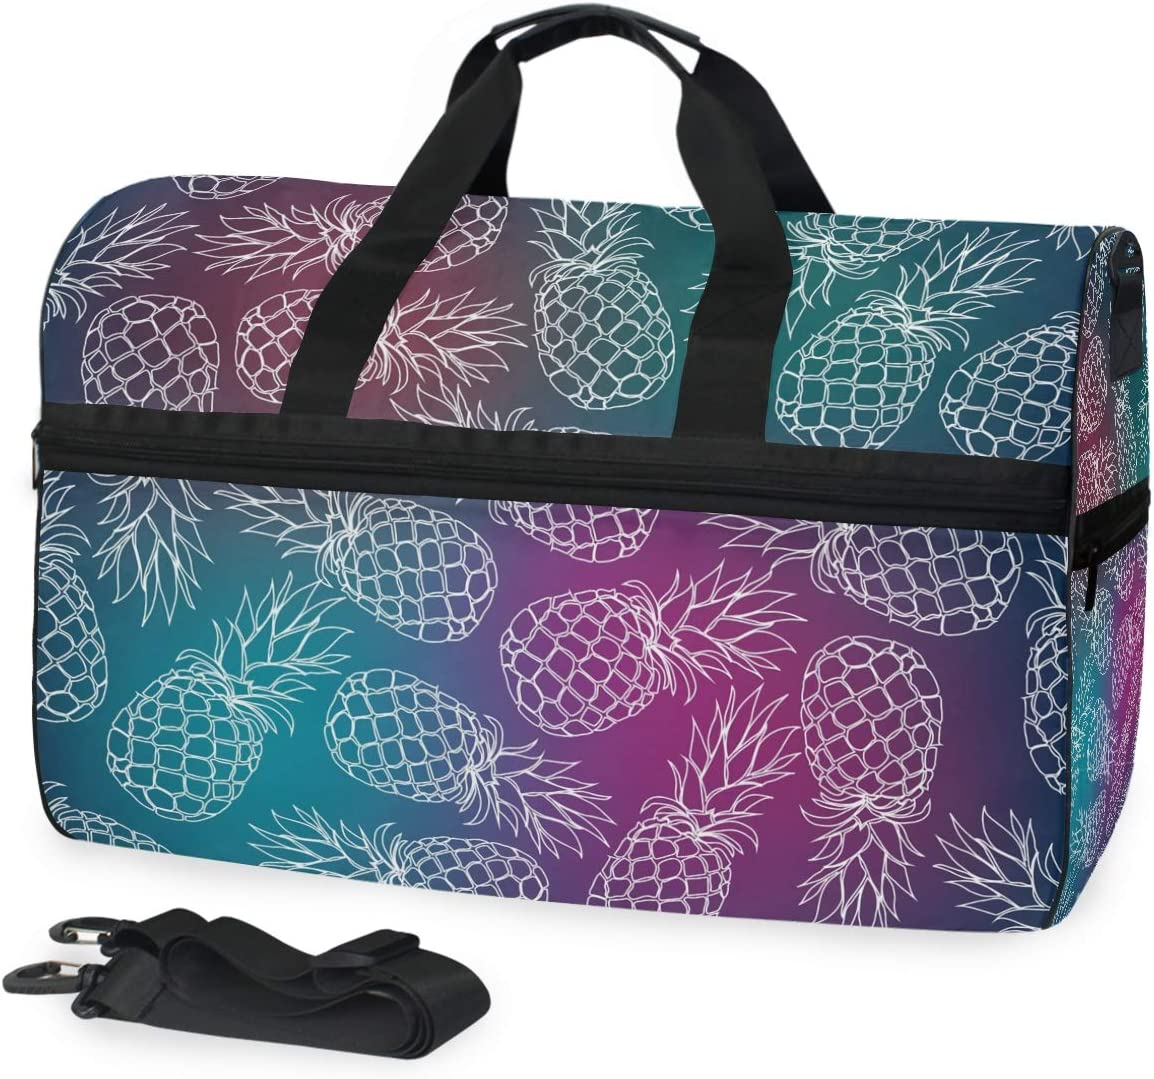 Pineapple Fruit Sports Gym Bag with Shoes Compartment Travel Duffel Bag for Men and Women